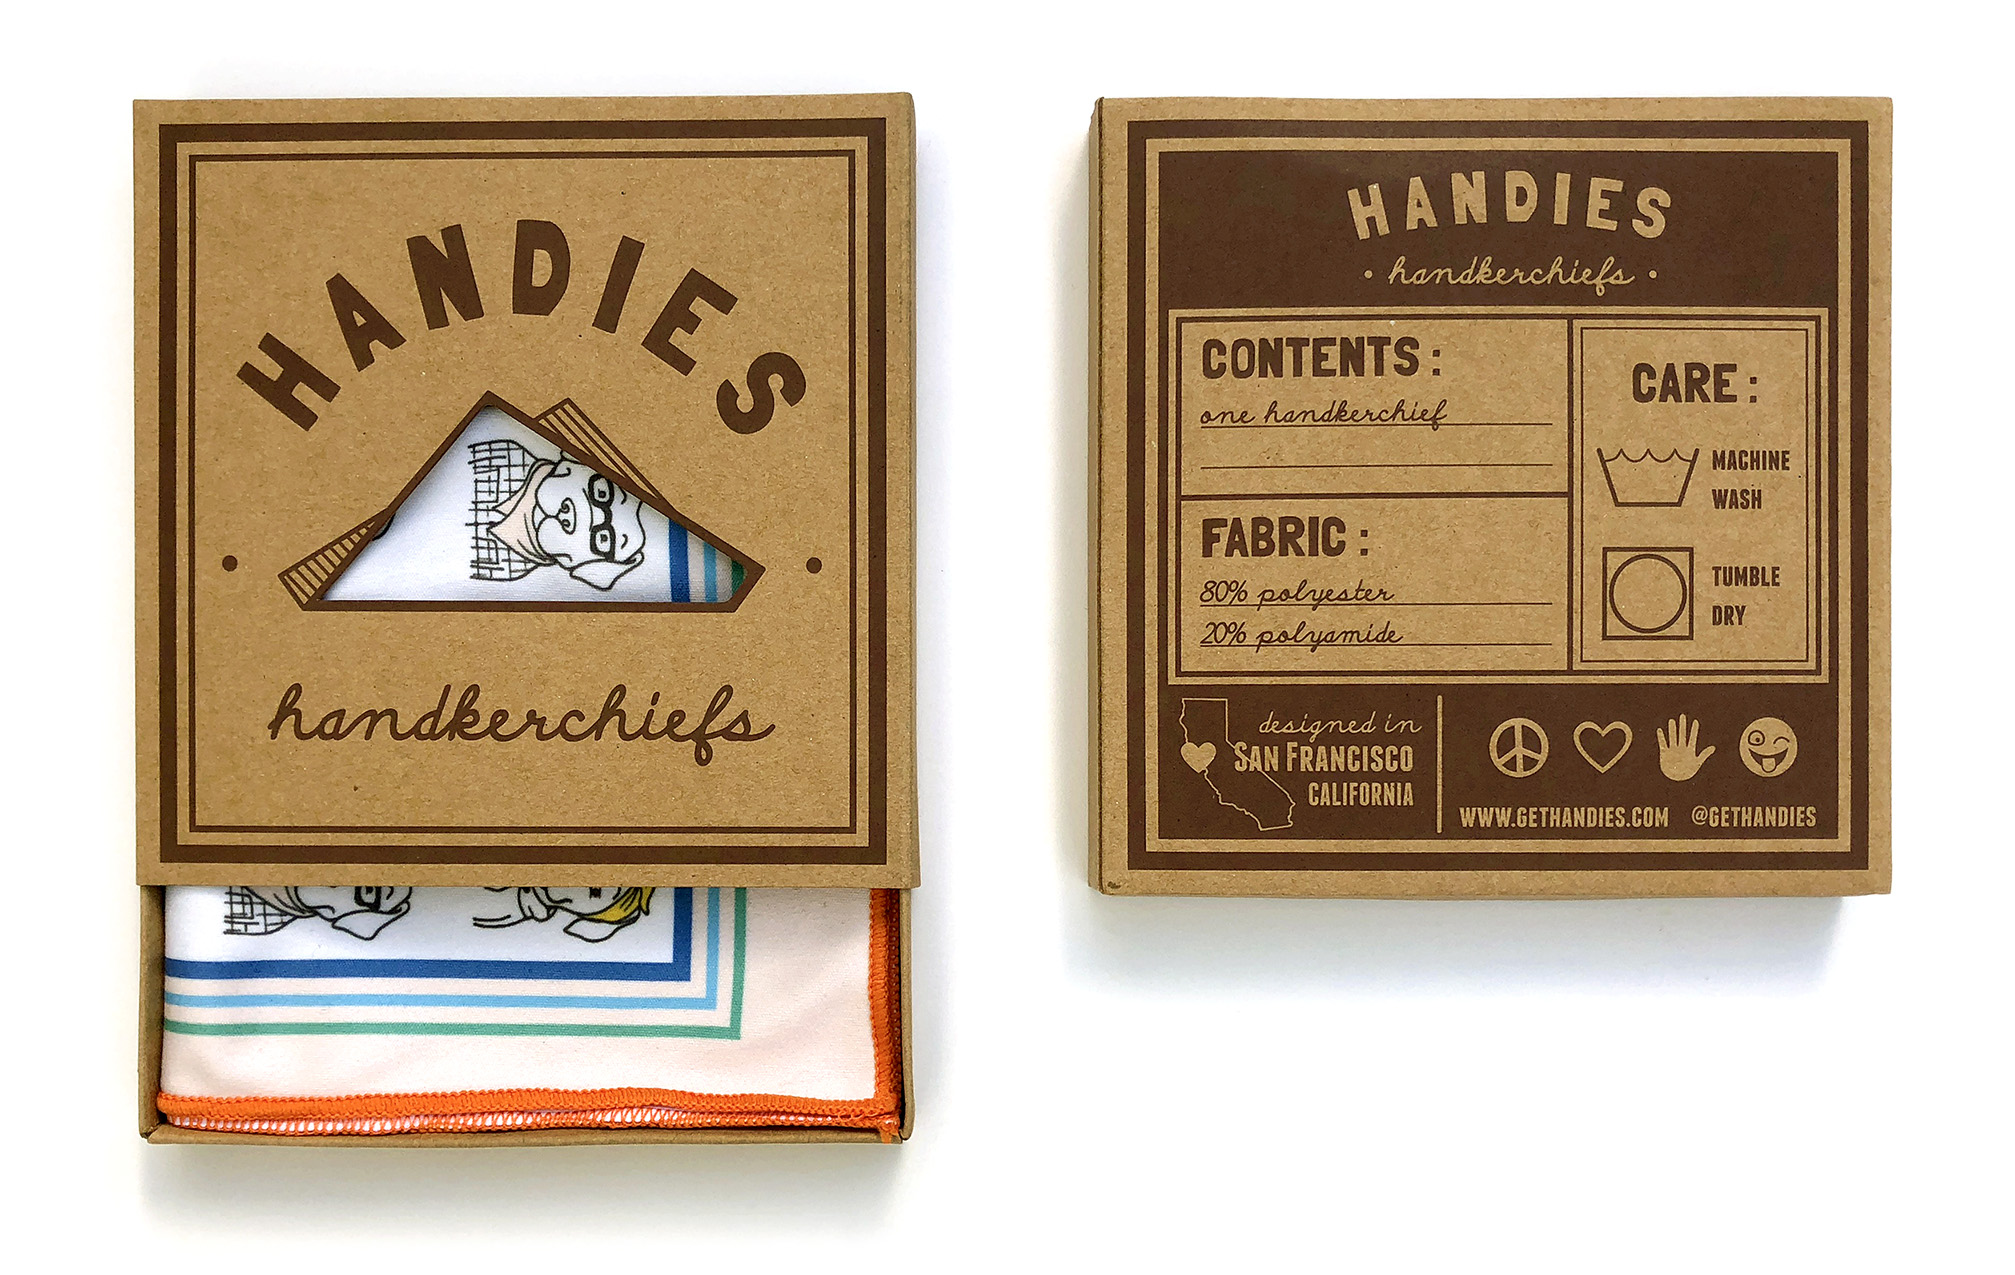 handies_packaging.jpg